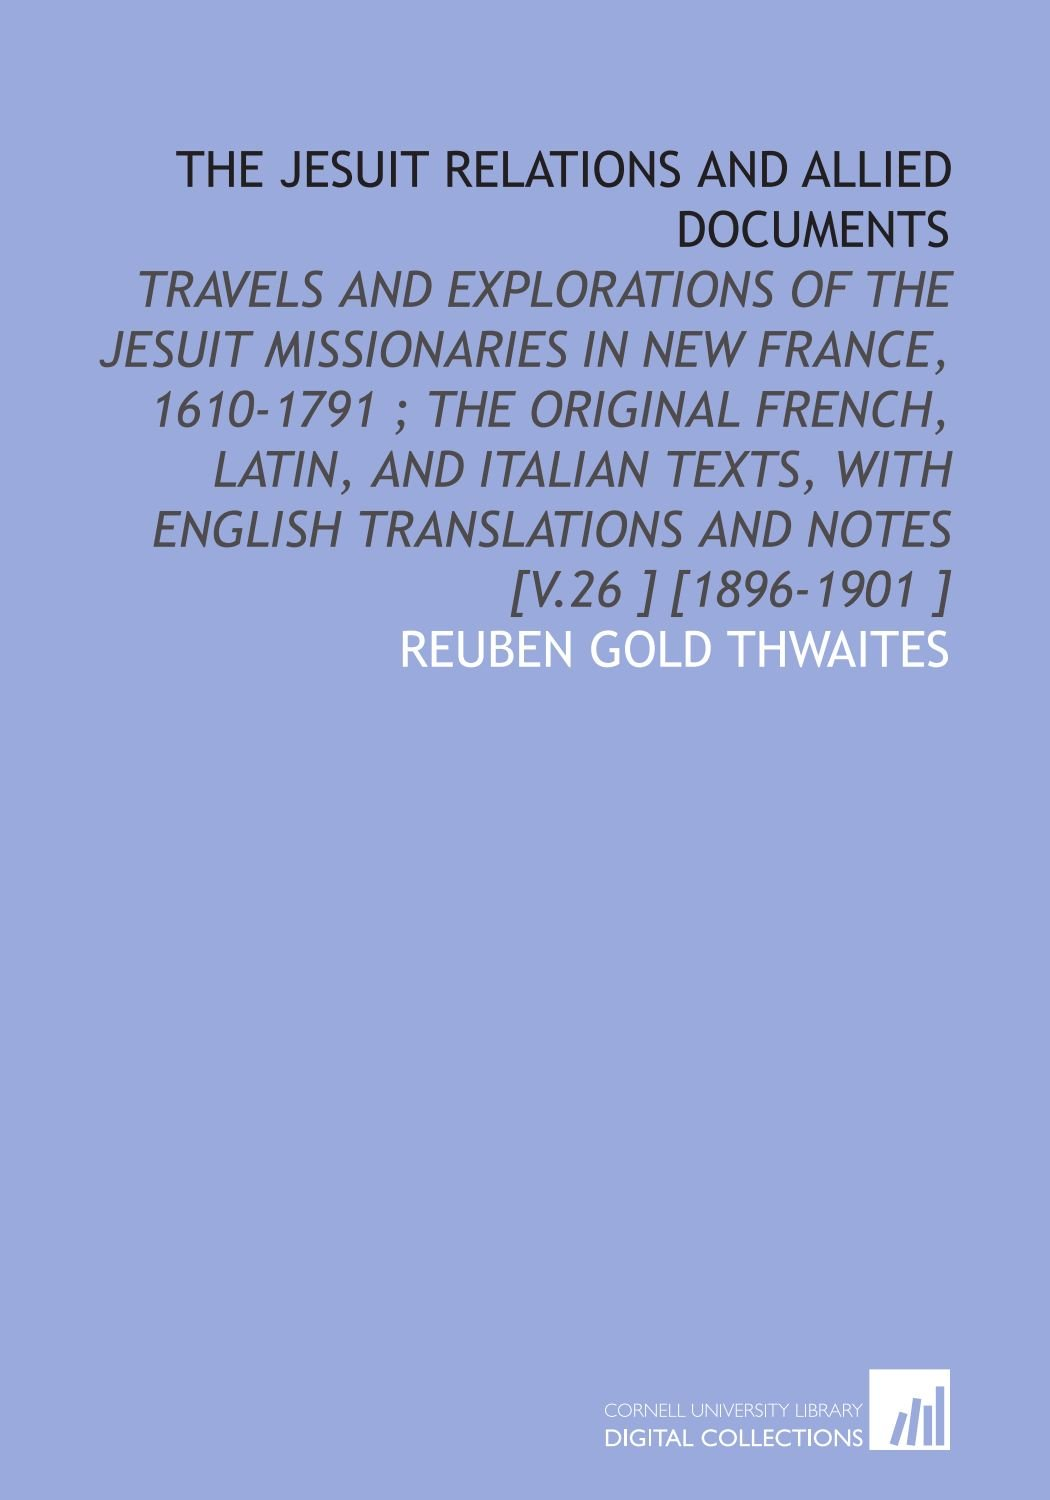 The Jesuit Relations and Allied Documents: Travels and Explorations of the Jesuit Missionaries in New France, 1610-1791 ; the Original French, Latin, ... Translations and Notes [V.26 ] [1896-1901 ] PDF